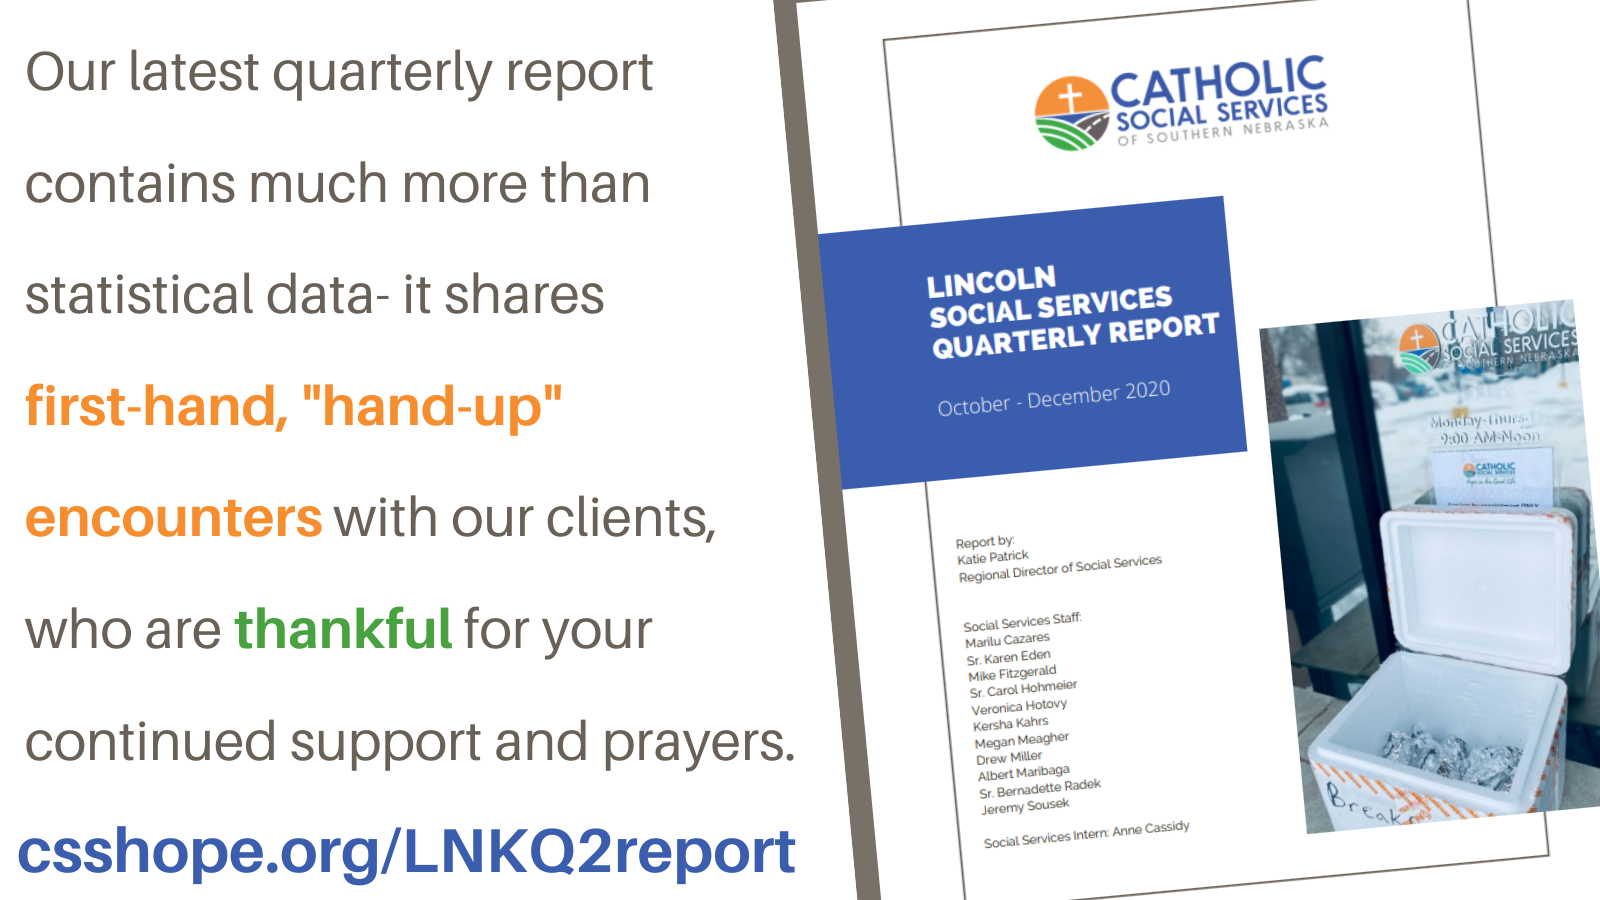 CLICK TO READ: 3 months of #HopeintheGoodLife! Presenting our Lincoln Social Services report from Oct-Dec 2020